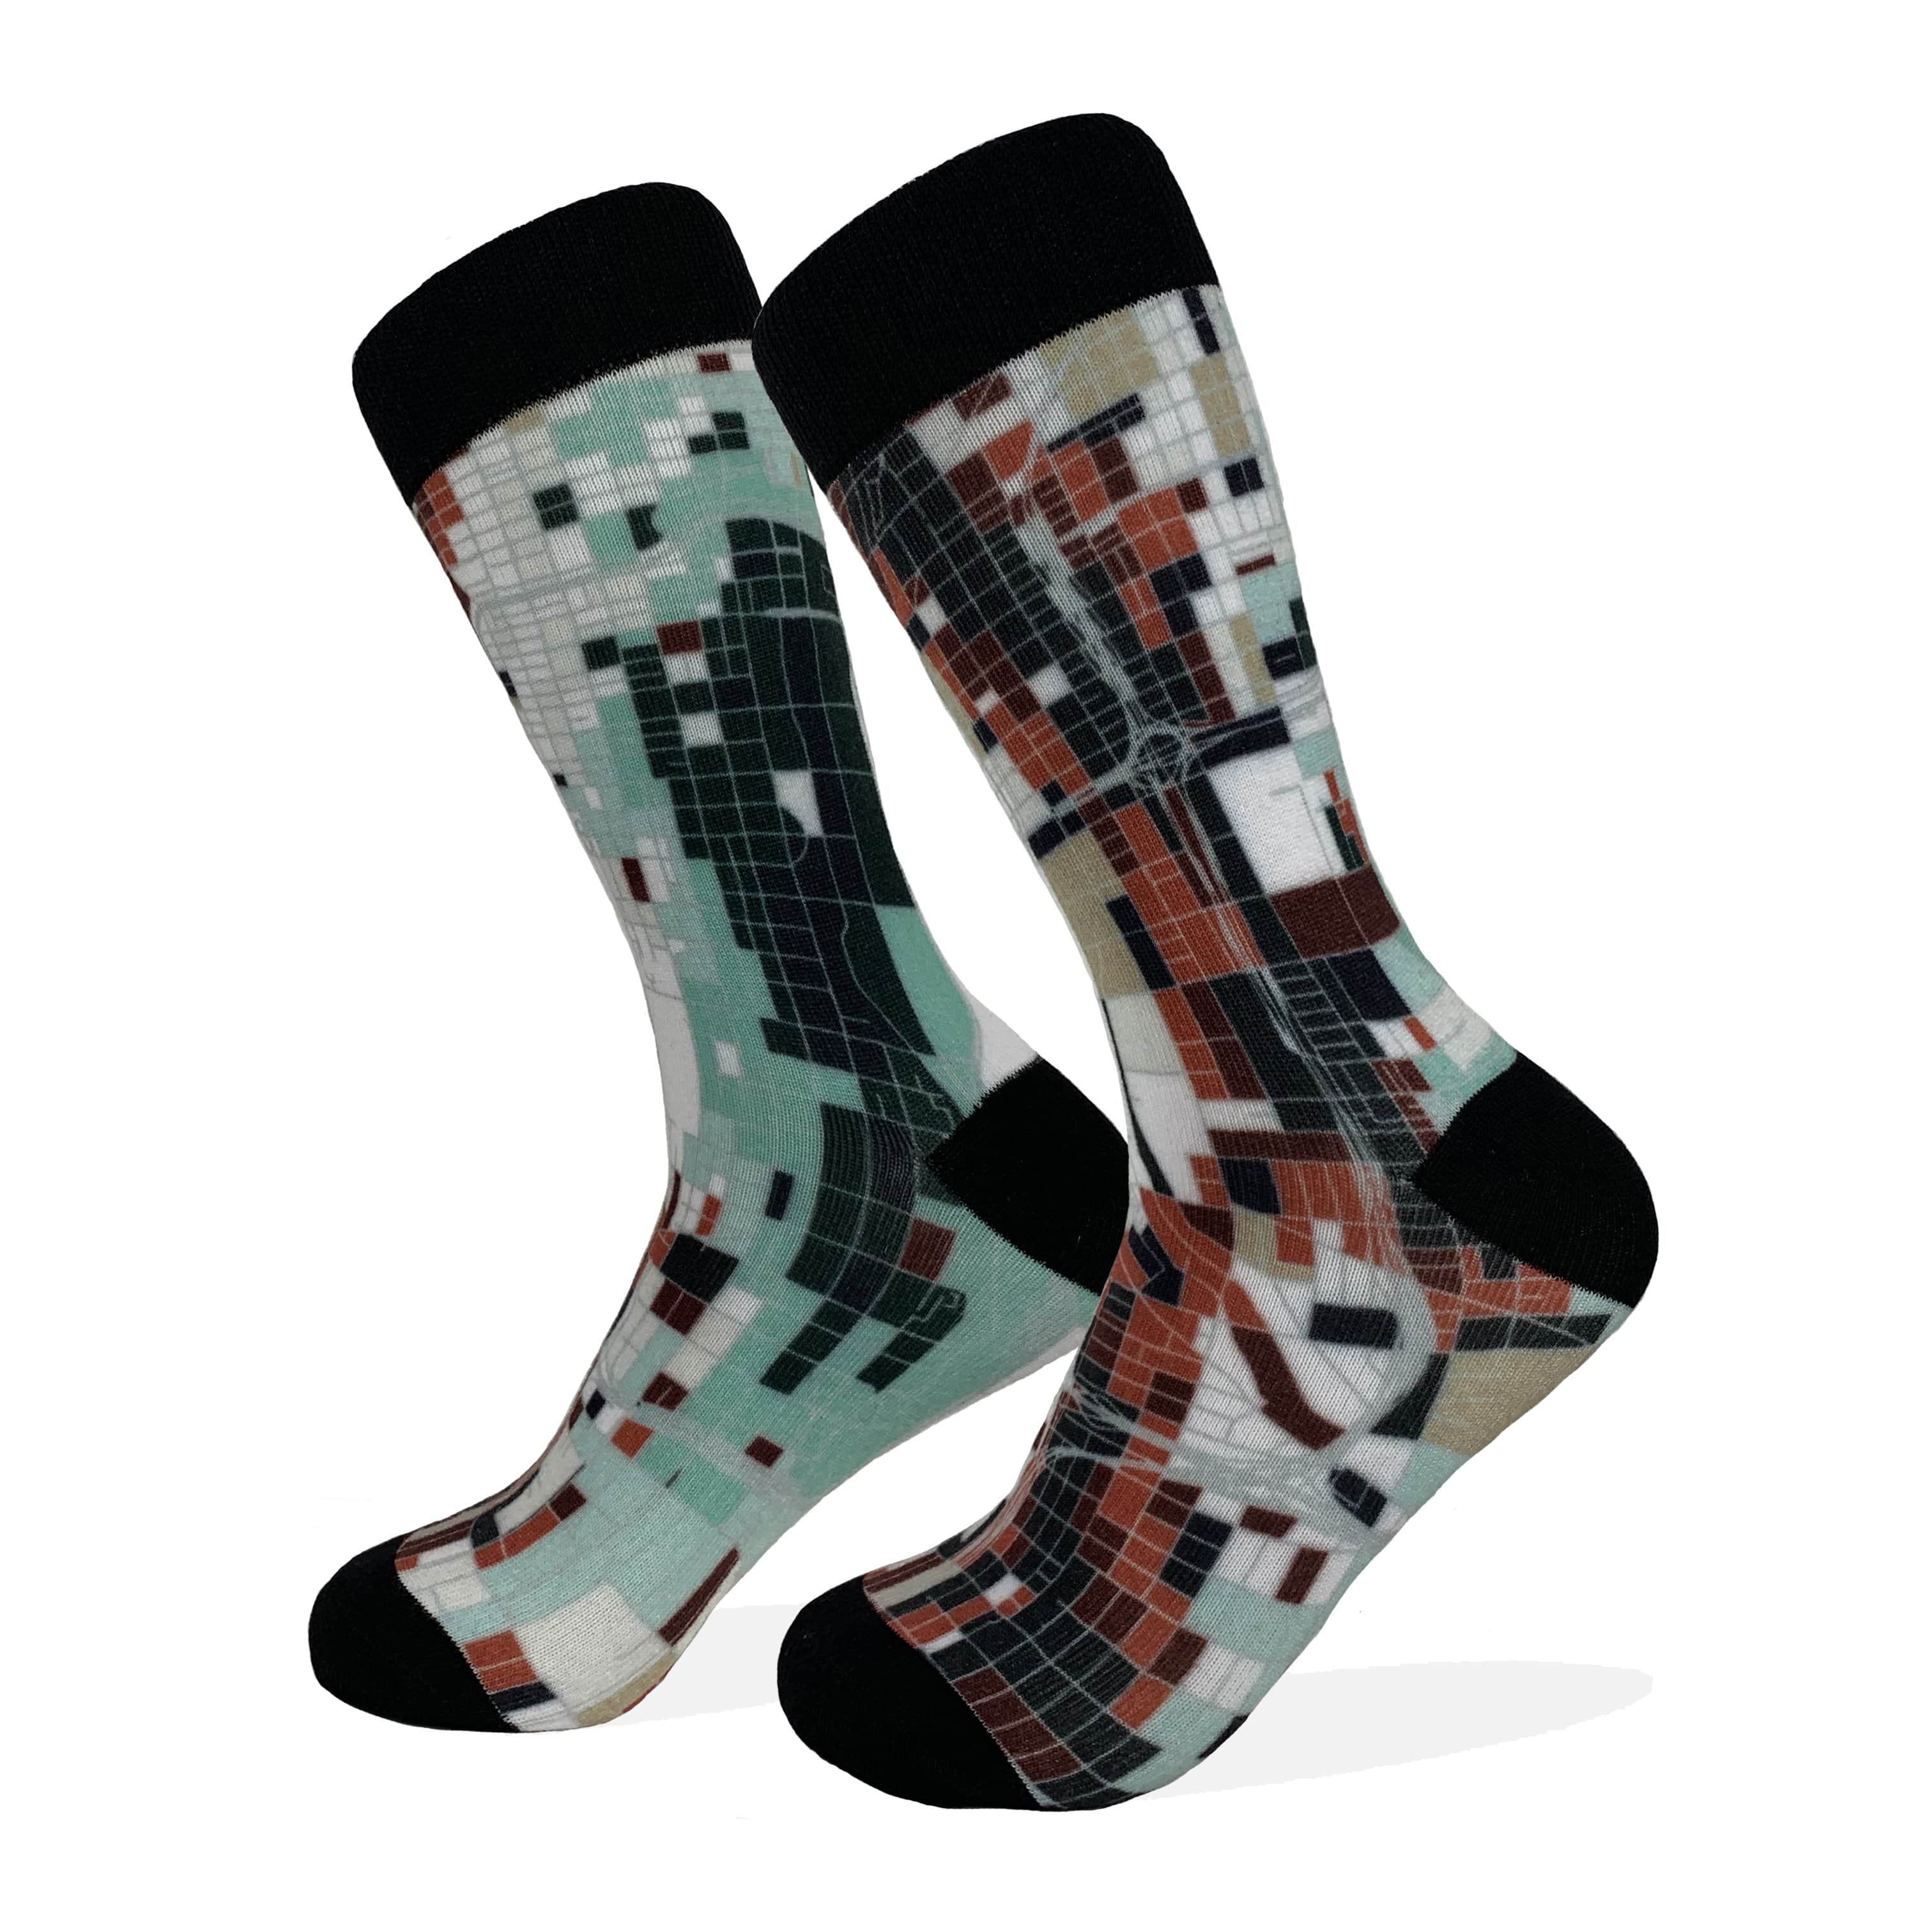 Chicago Map Socks | Shop Online For Colorful & Bold Socks